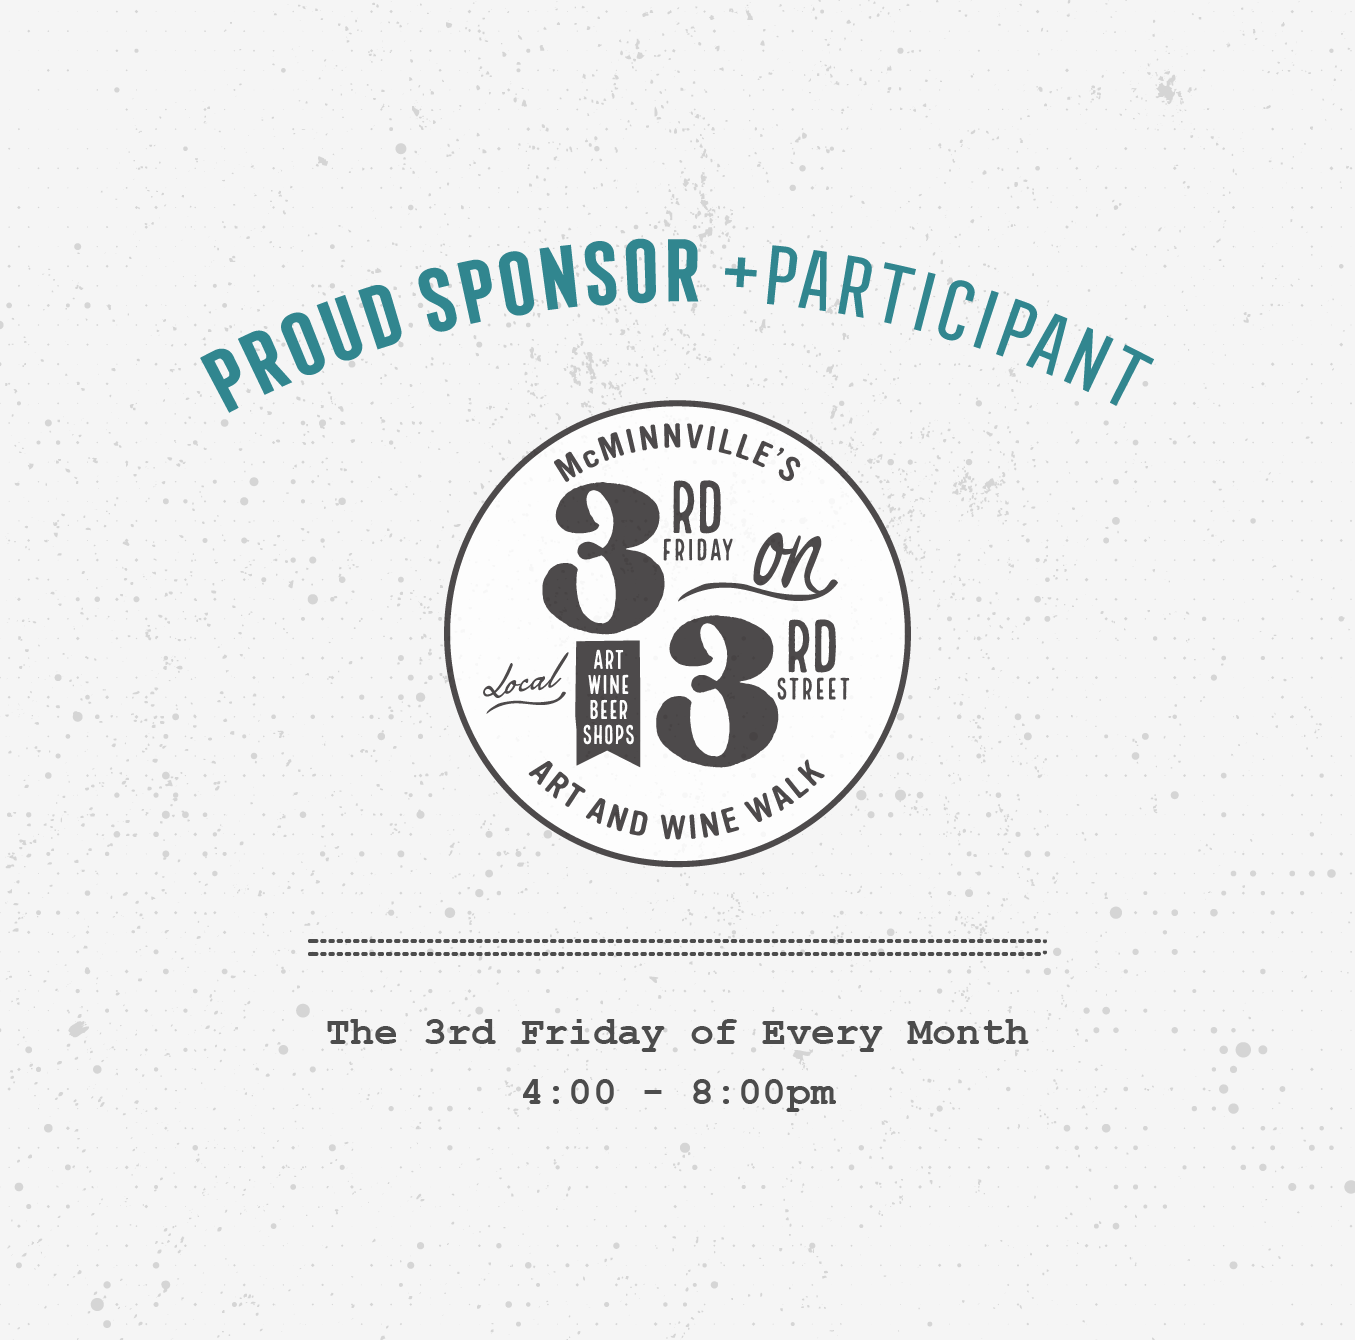 Proud Sponsor + Participant of 3rd Friday on 3rd Street • 237 Marketing + Web